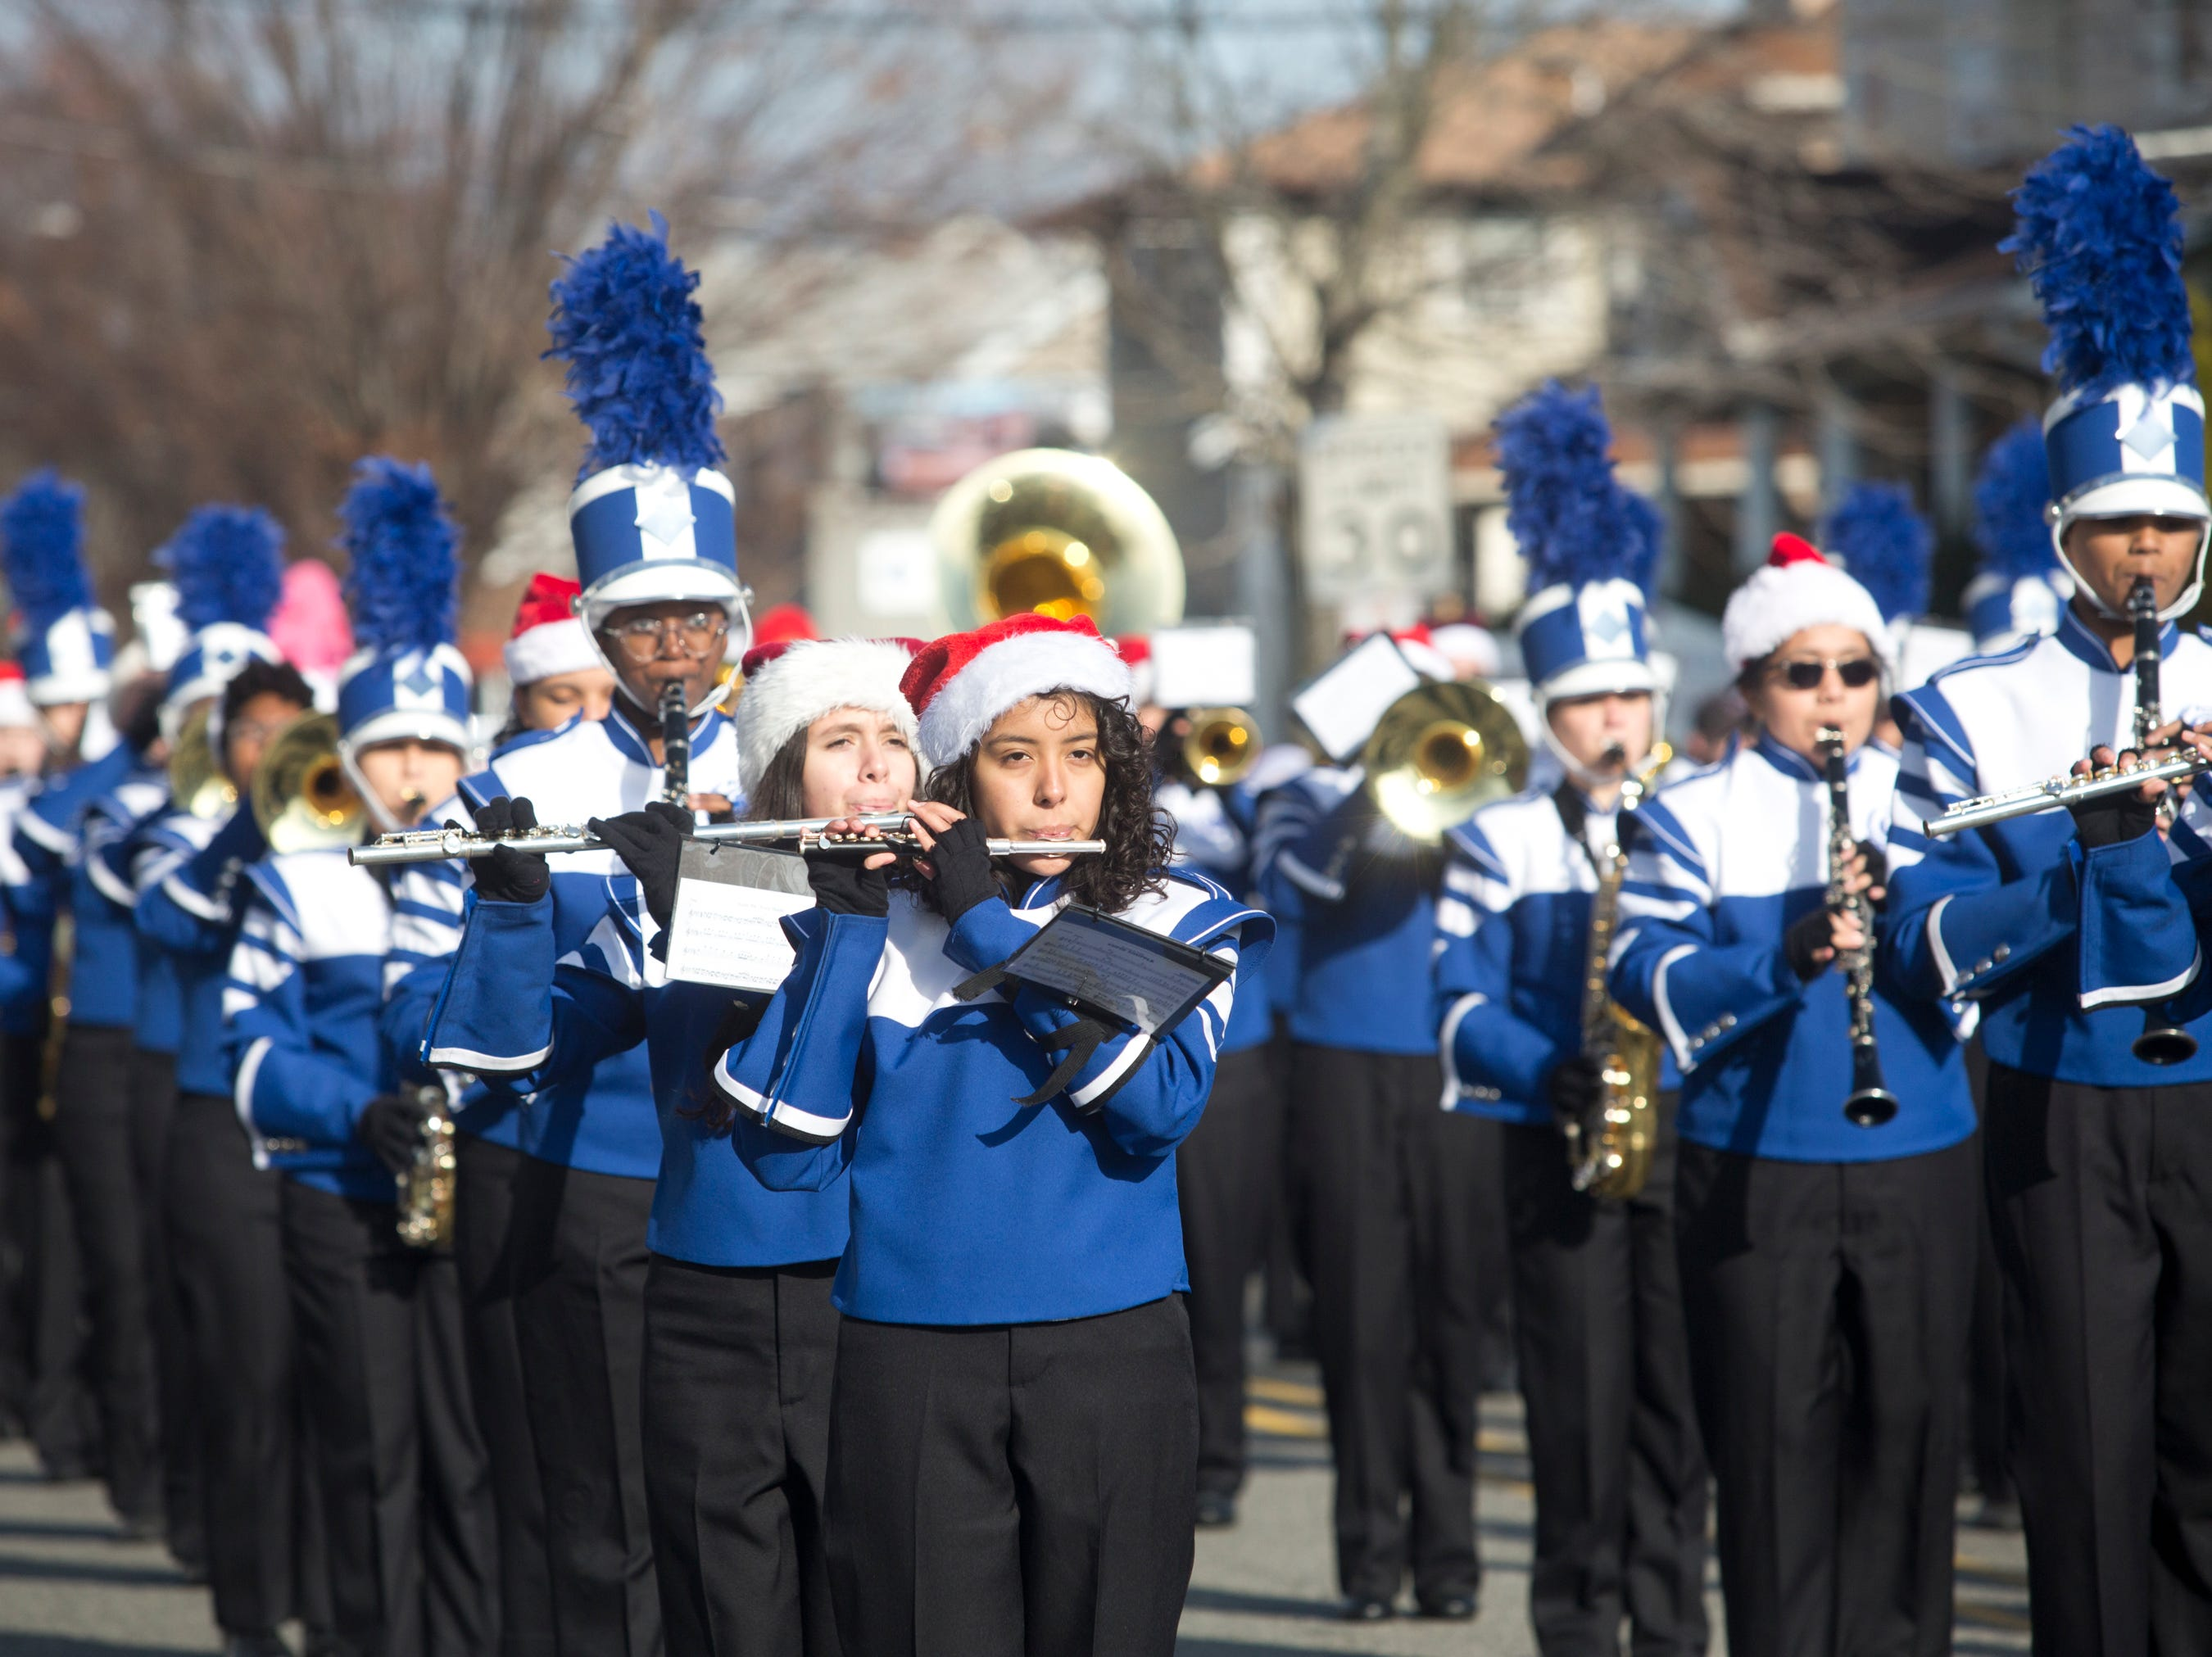 Britney Sanchez, an 11th grader at Passaic County Technical Institute, plays the piccolo during the 33rd Annual Santa Parade in Hawthorne on Saturday, Dec. 1, 2018.